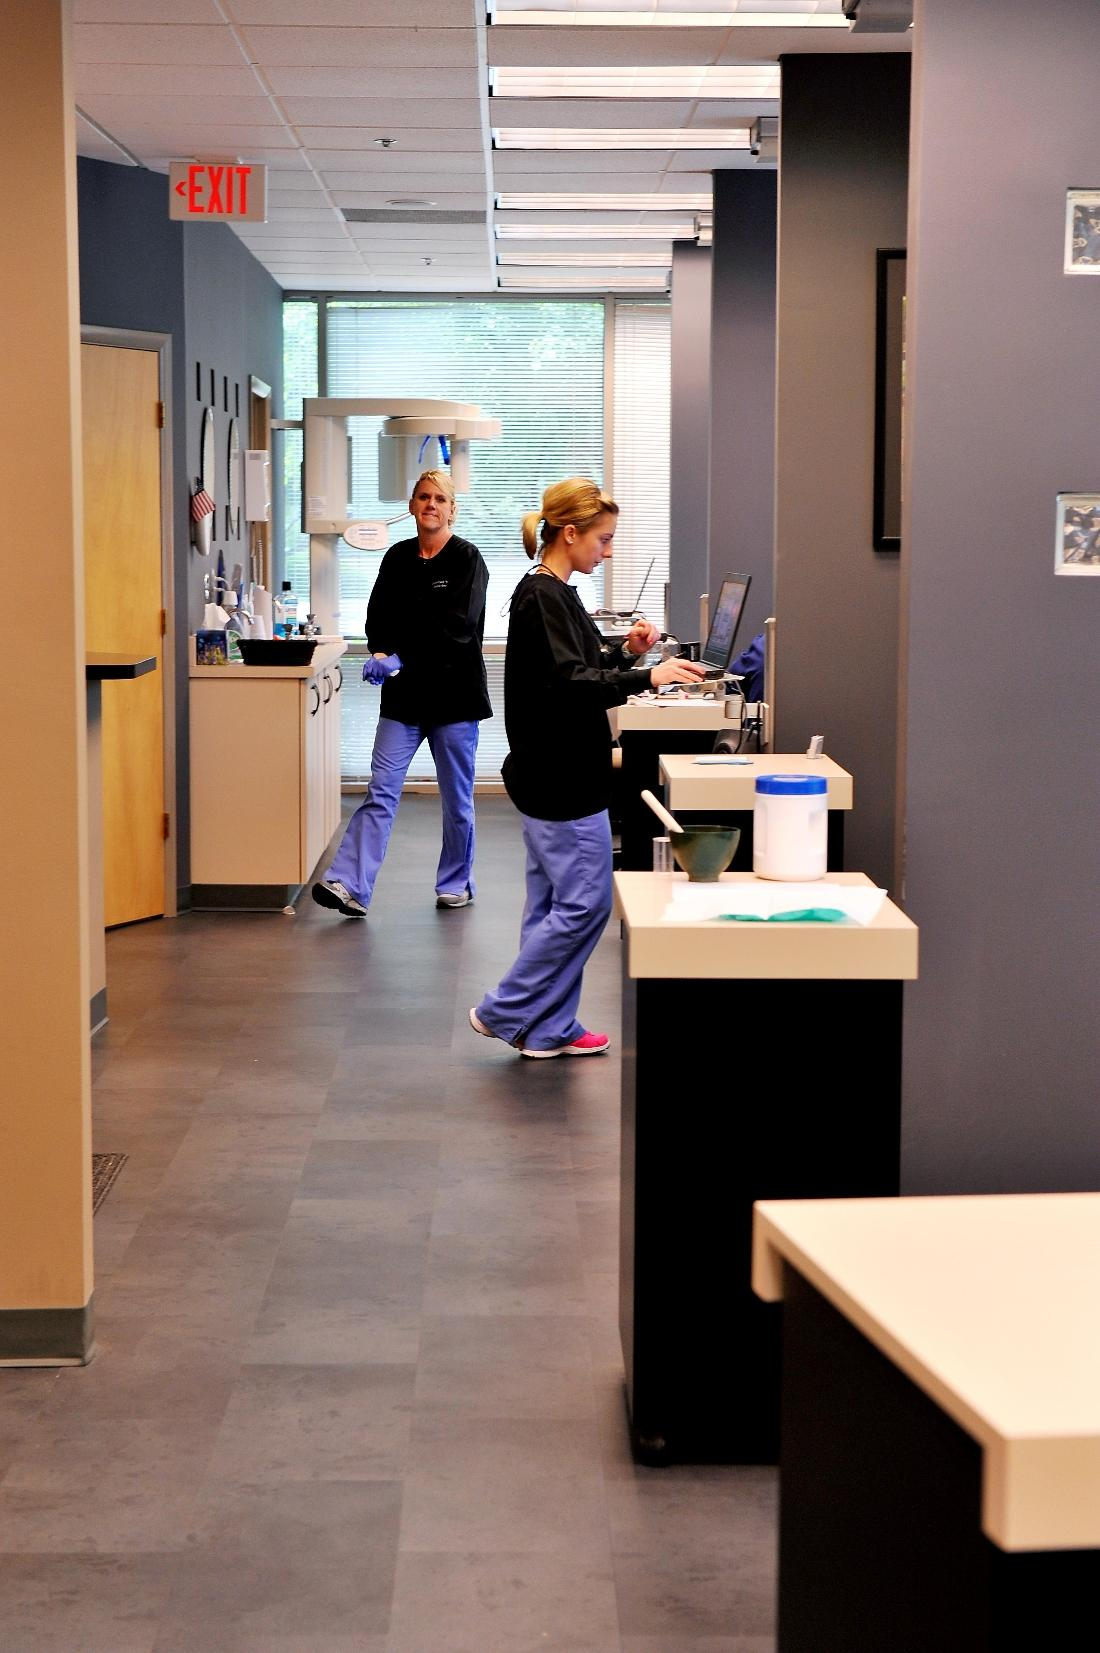 Our hygienists, busy taking care of patients